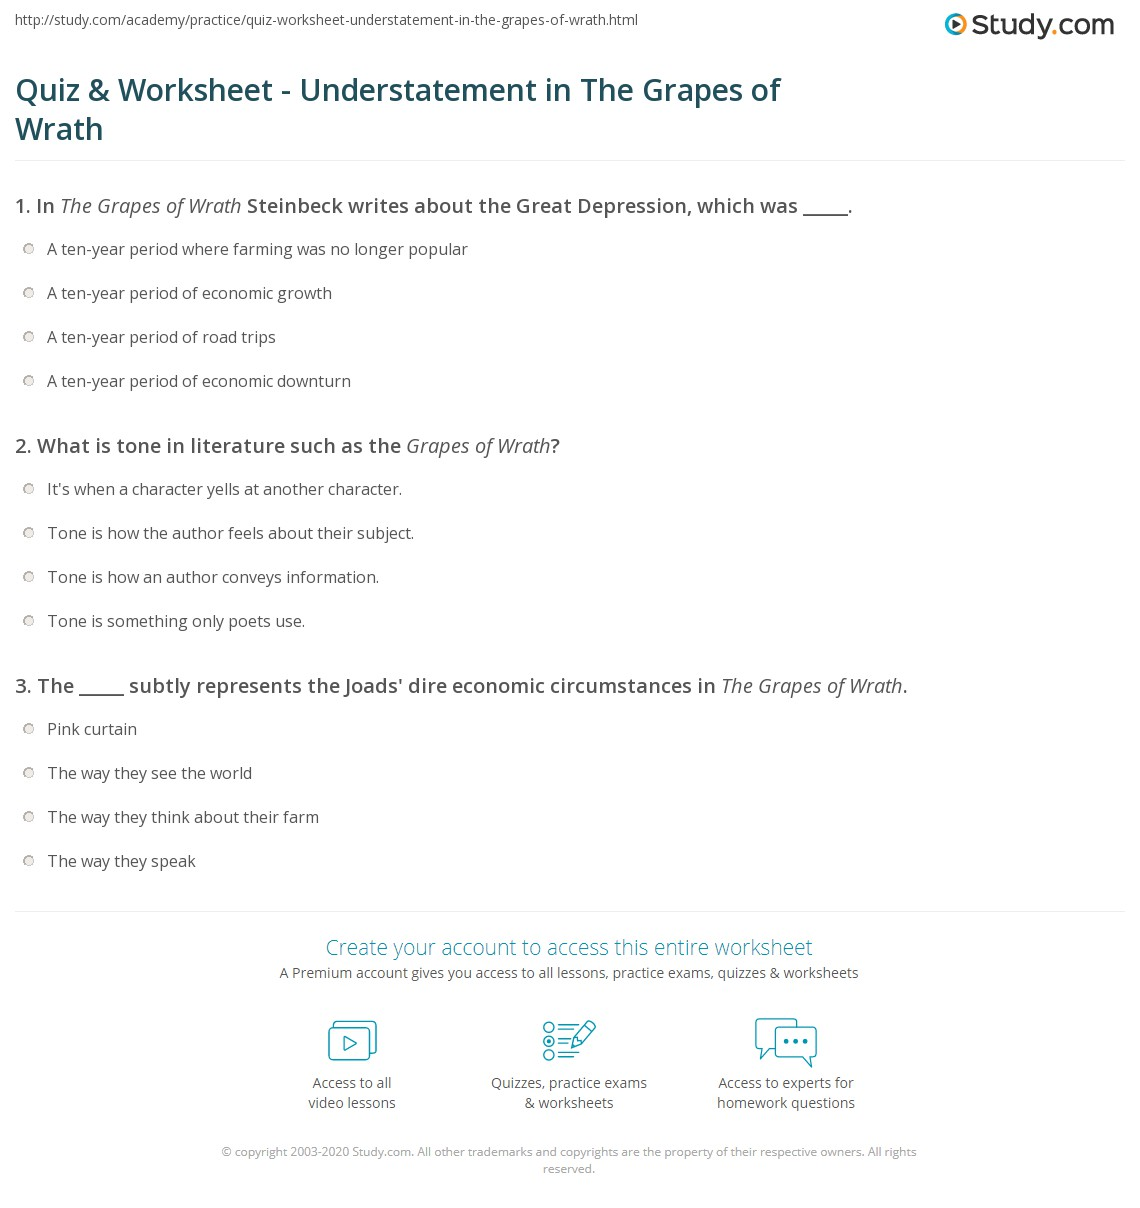 Workbooks understatement worksheets : Quiz & Worksheet - Understatement in The Grapes of Wrath | Study.com